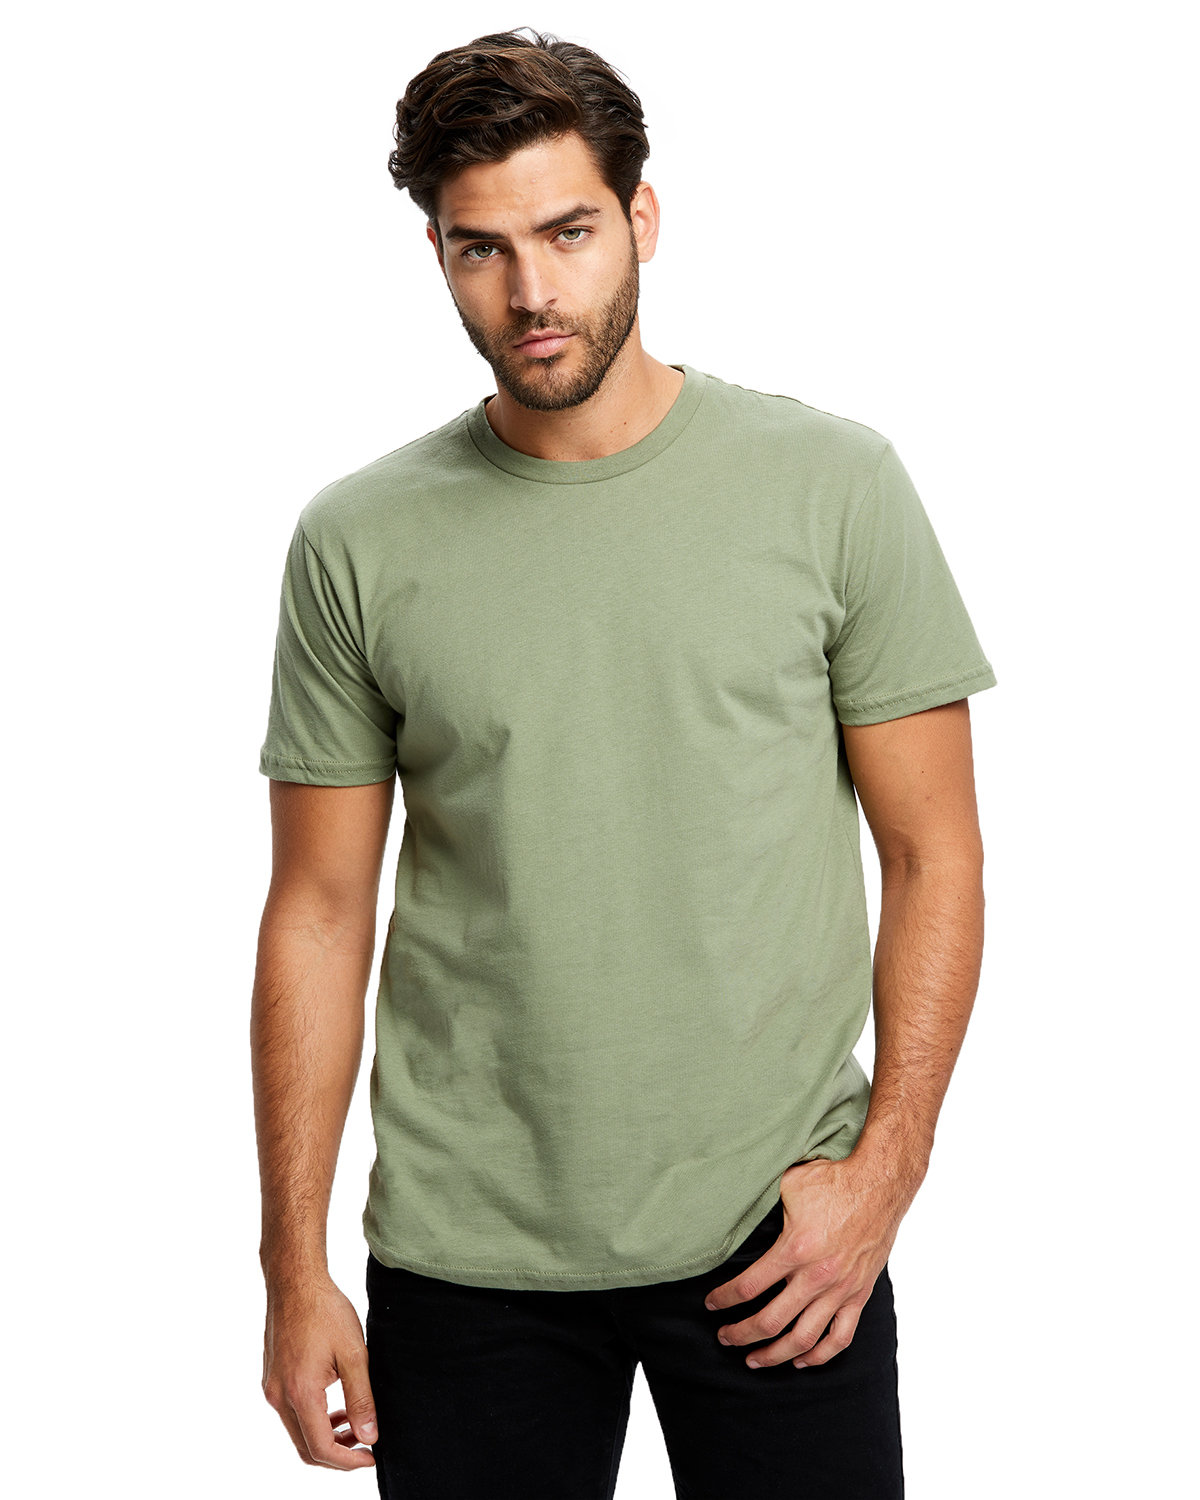 US Blanks Men's Made in USA Short Sleeve Crew T-Shirt OLIVE